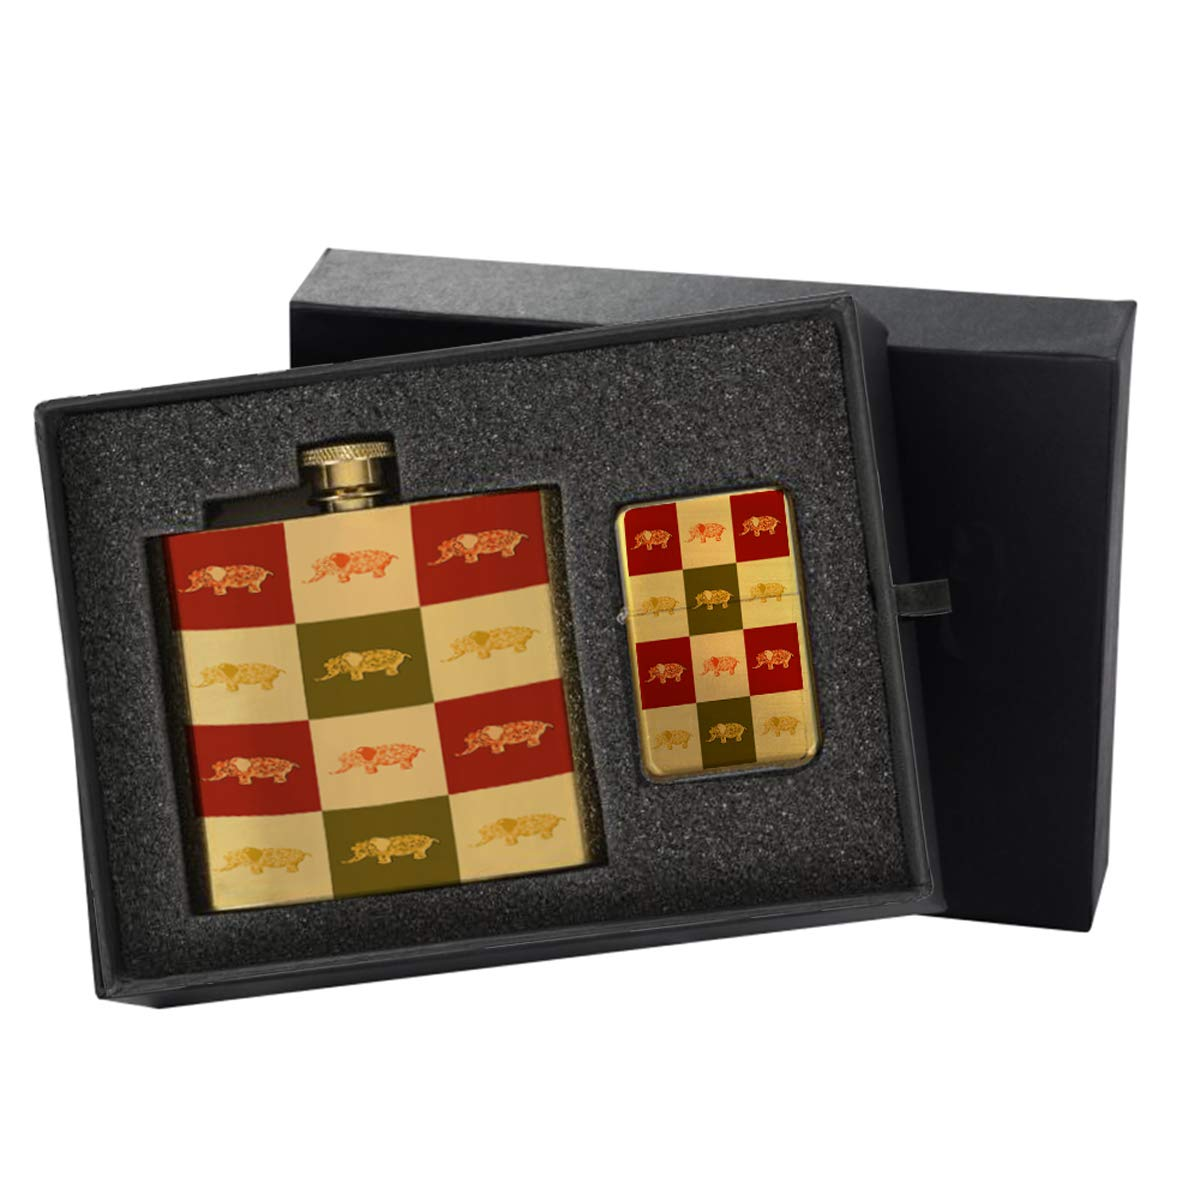 Girls Elephant Flowers - Gold Lighter and Pocket Hip Liquor Flask Survival Camping Gift Box Set